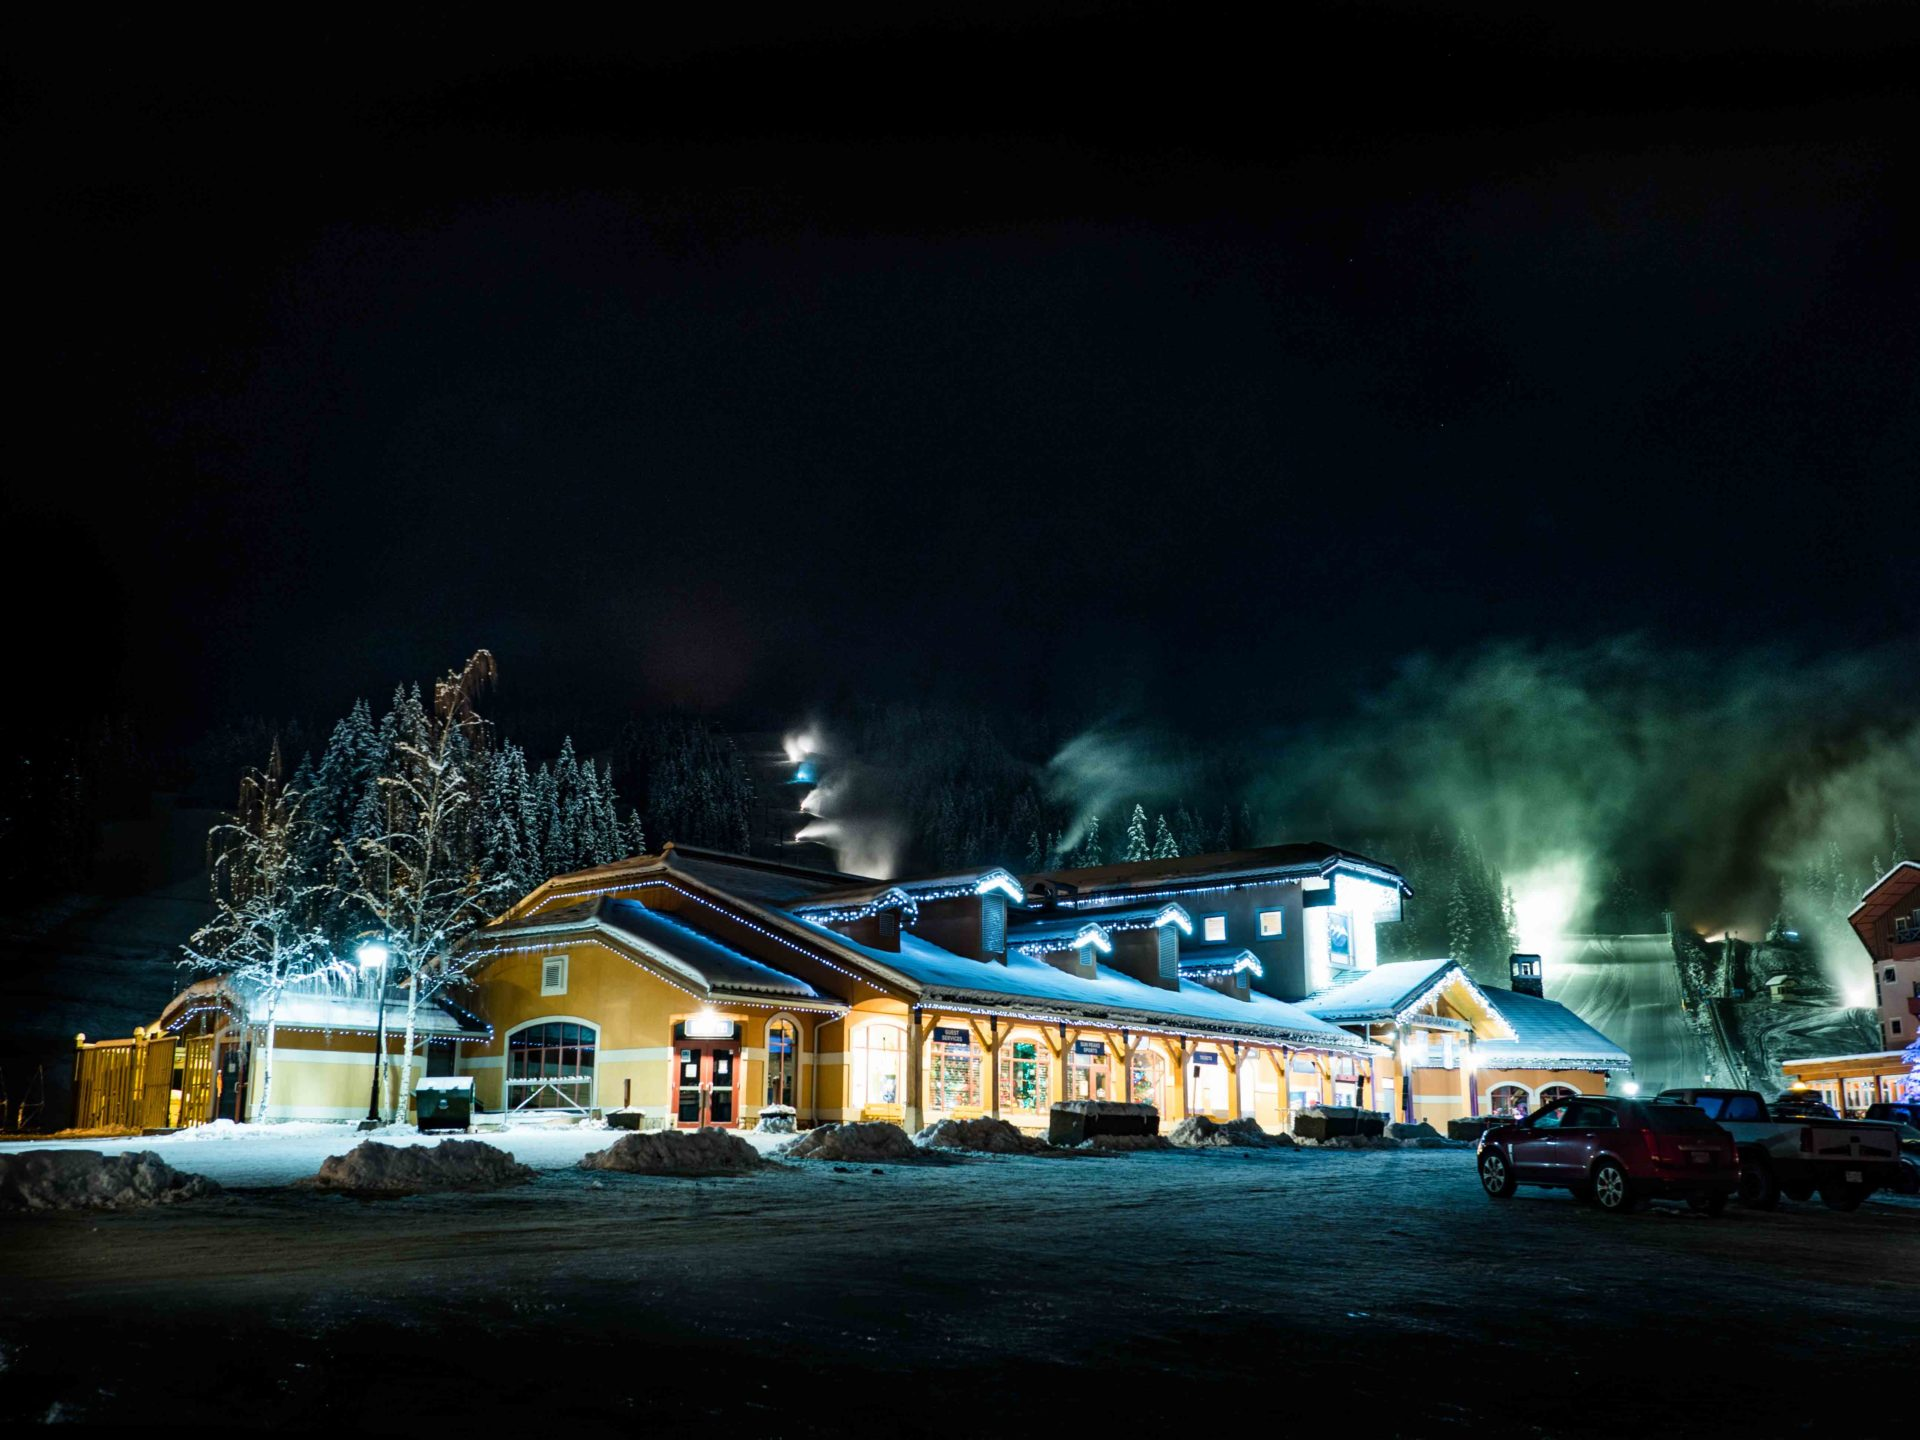 Sun peaks in winter at night